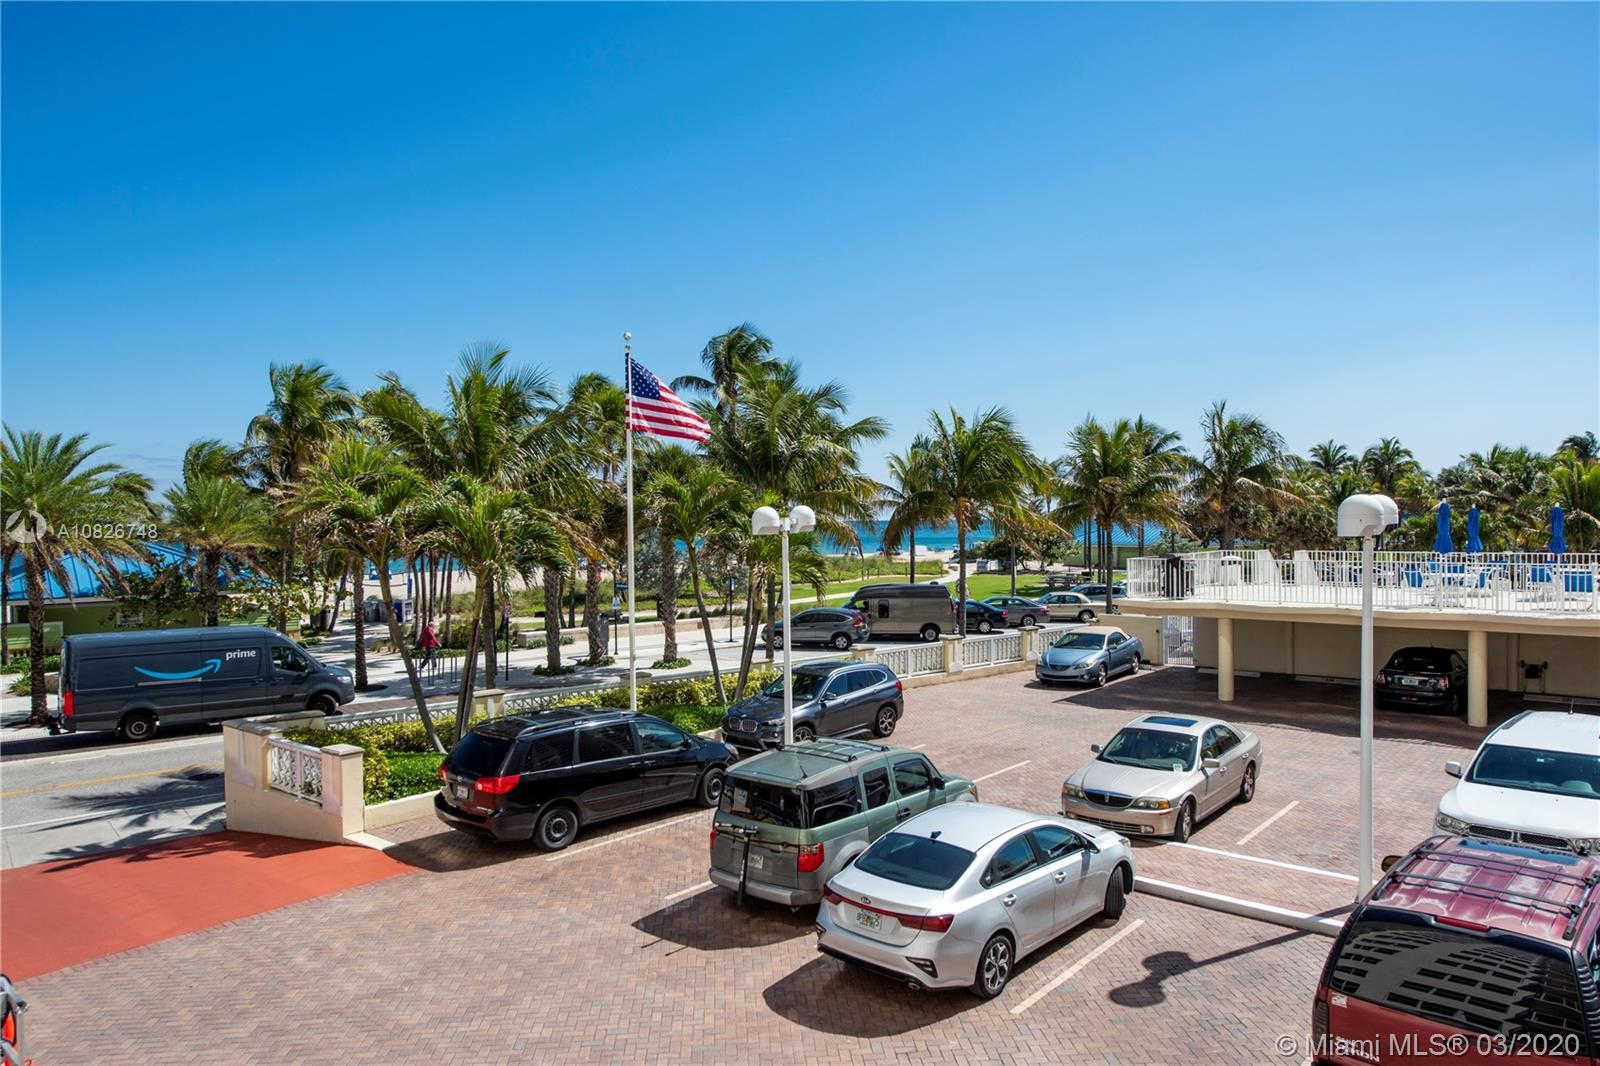 Spacious 3 bedroom, 2.5 bath with direct ocean view. All bedrooms have ocean view. Sip your coffee a